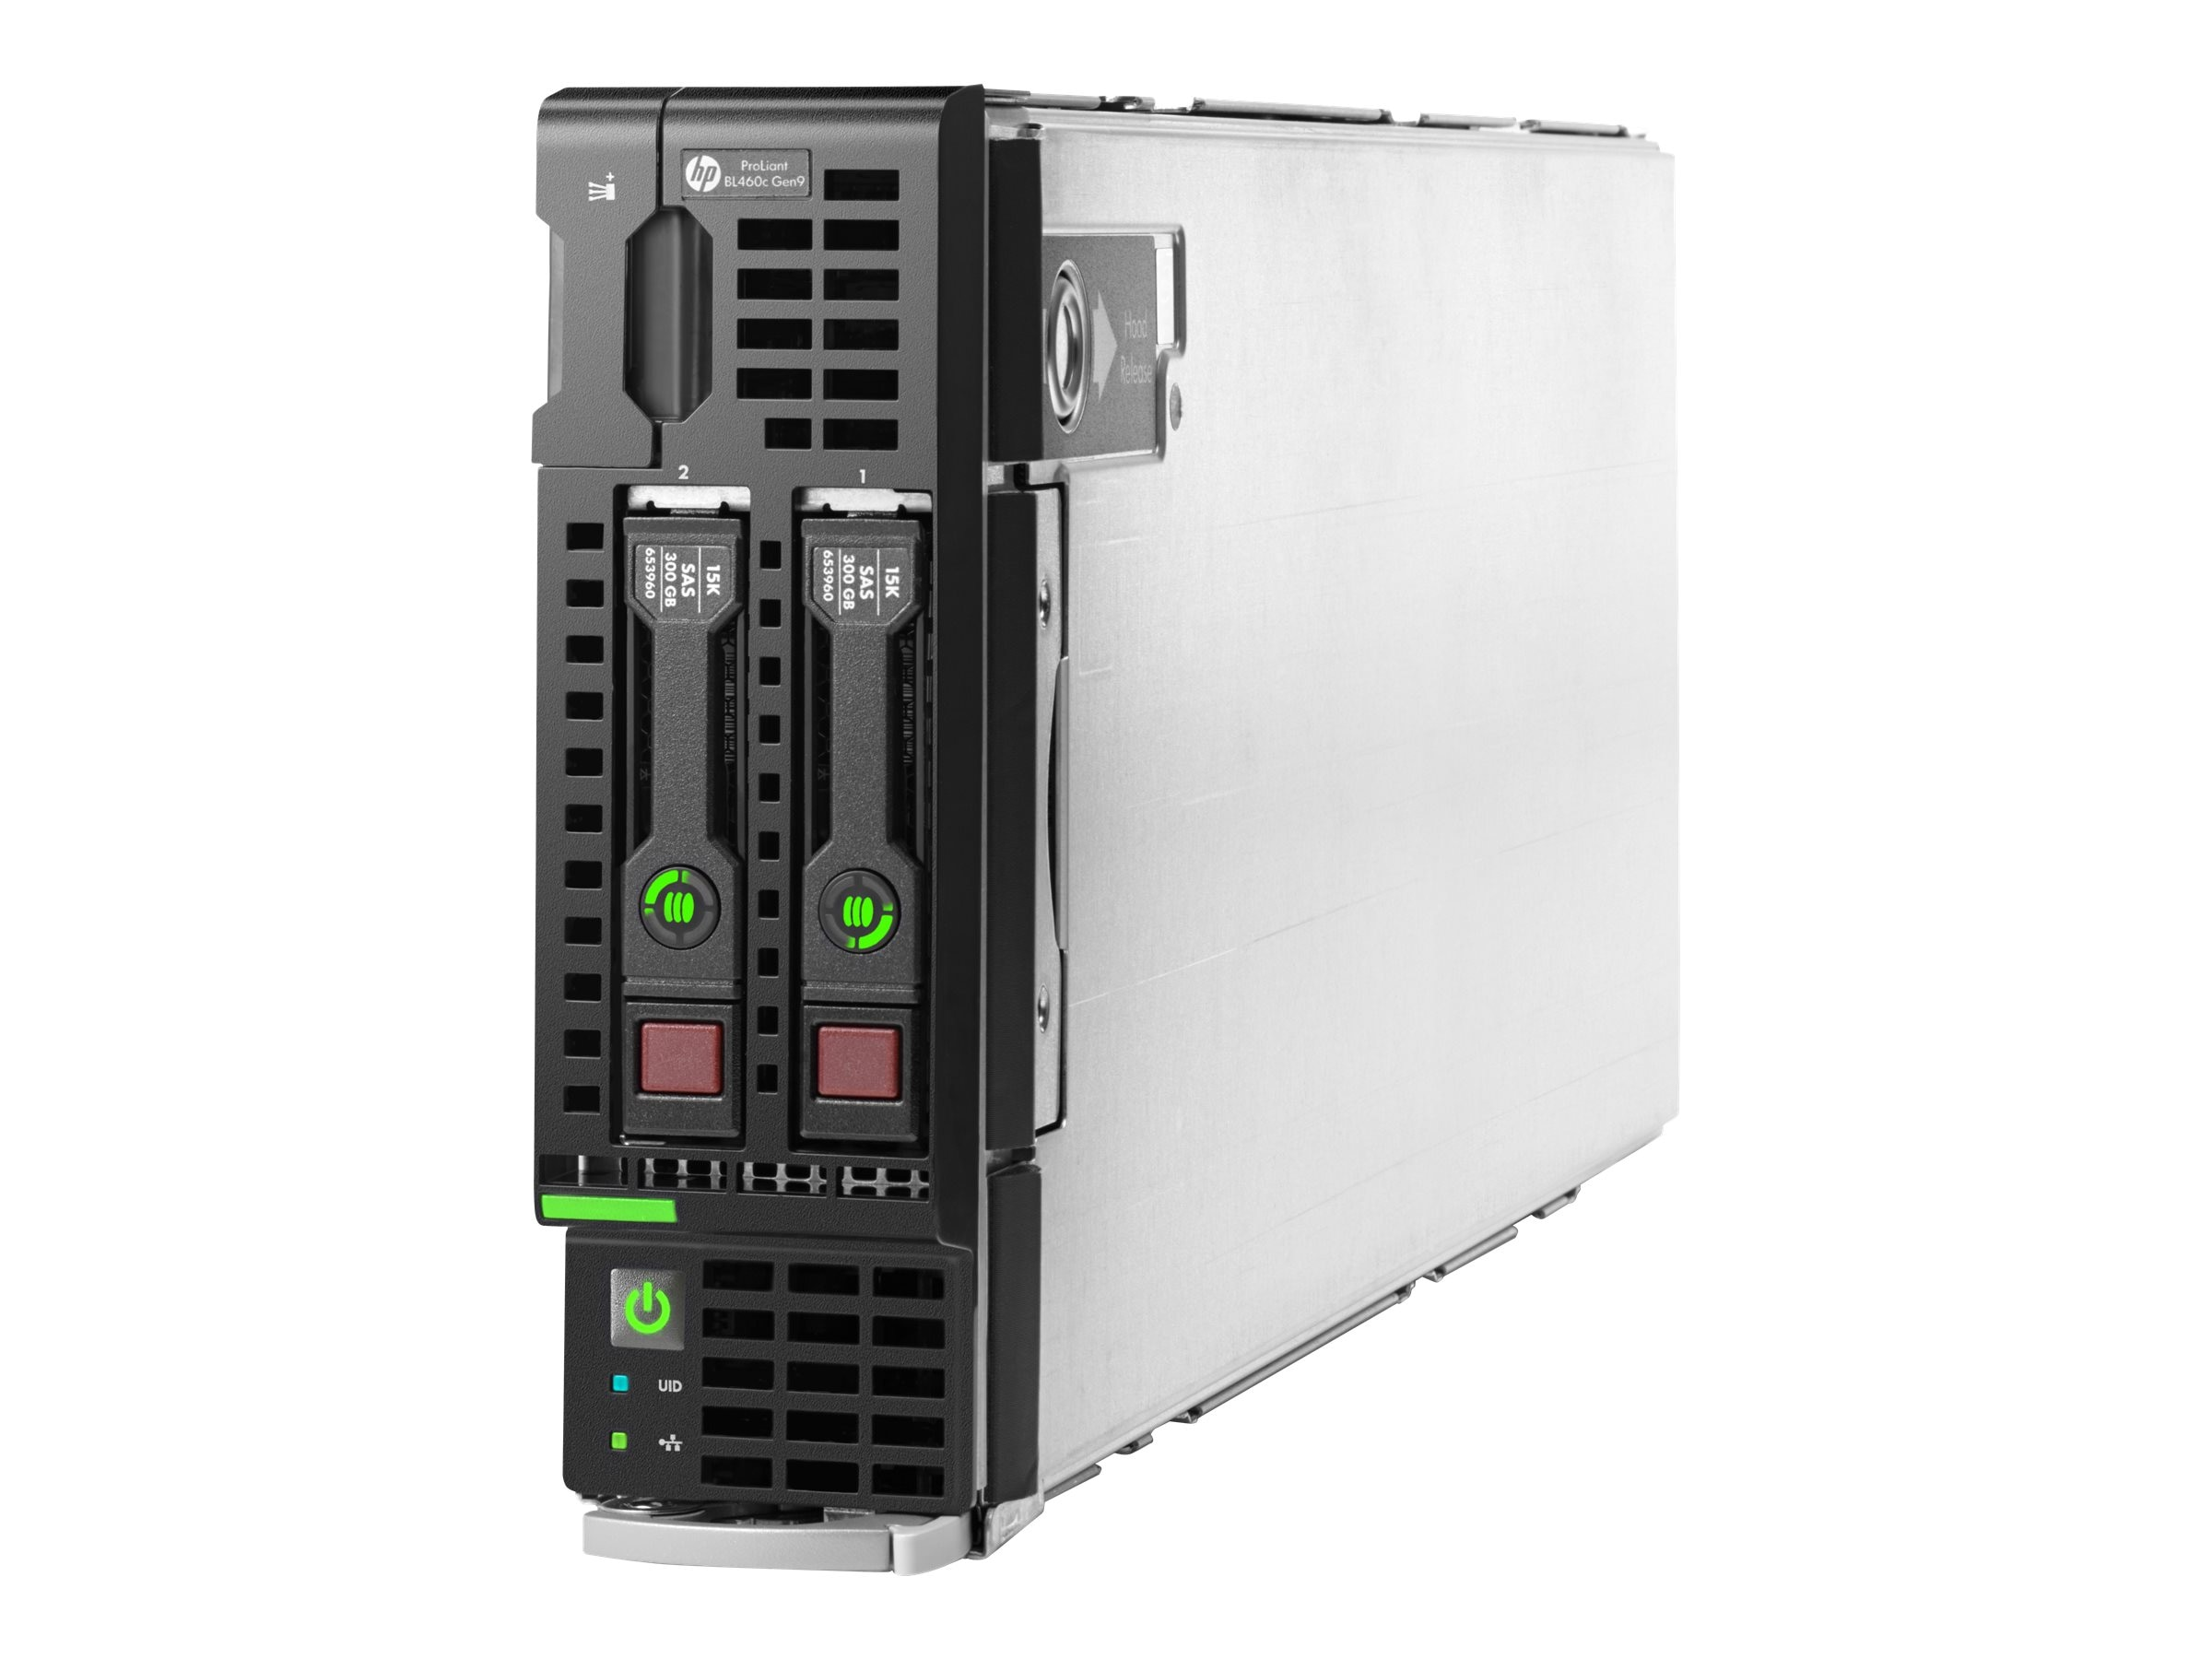 HPE ProLiant BL460c Gen9 Intel 2.6GHz Xeon Xeon, 779803-S01, 17784032, Servers - Blade